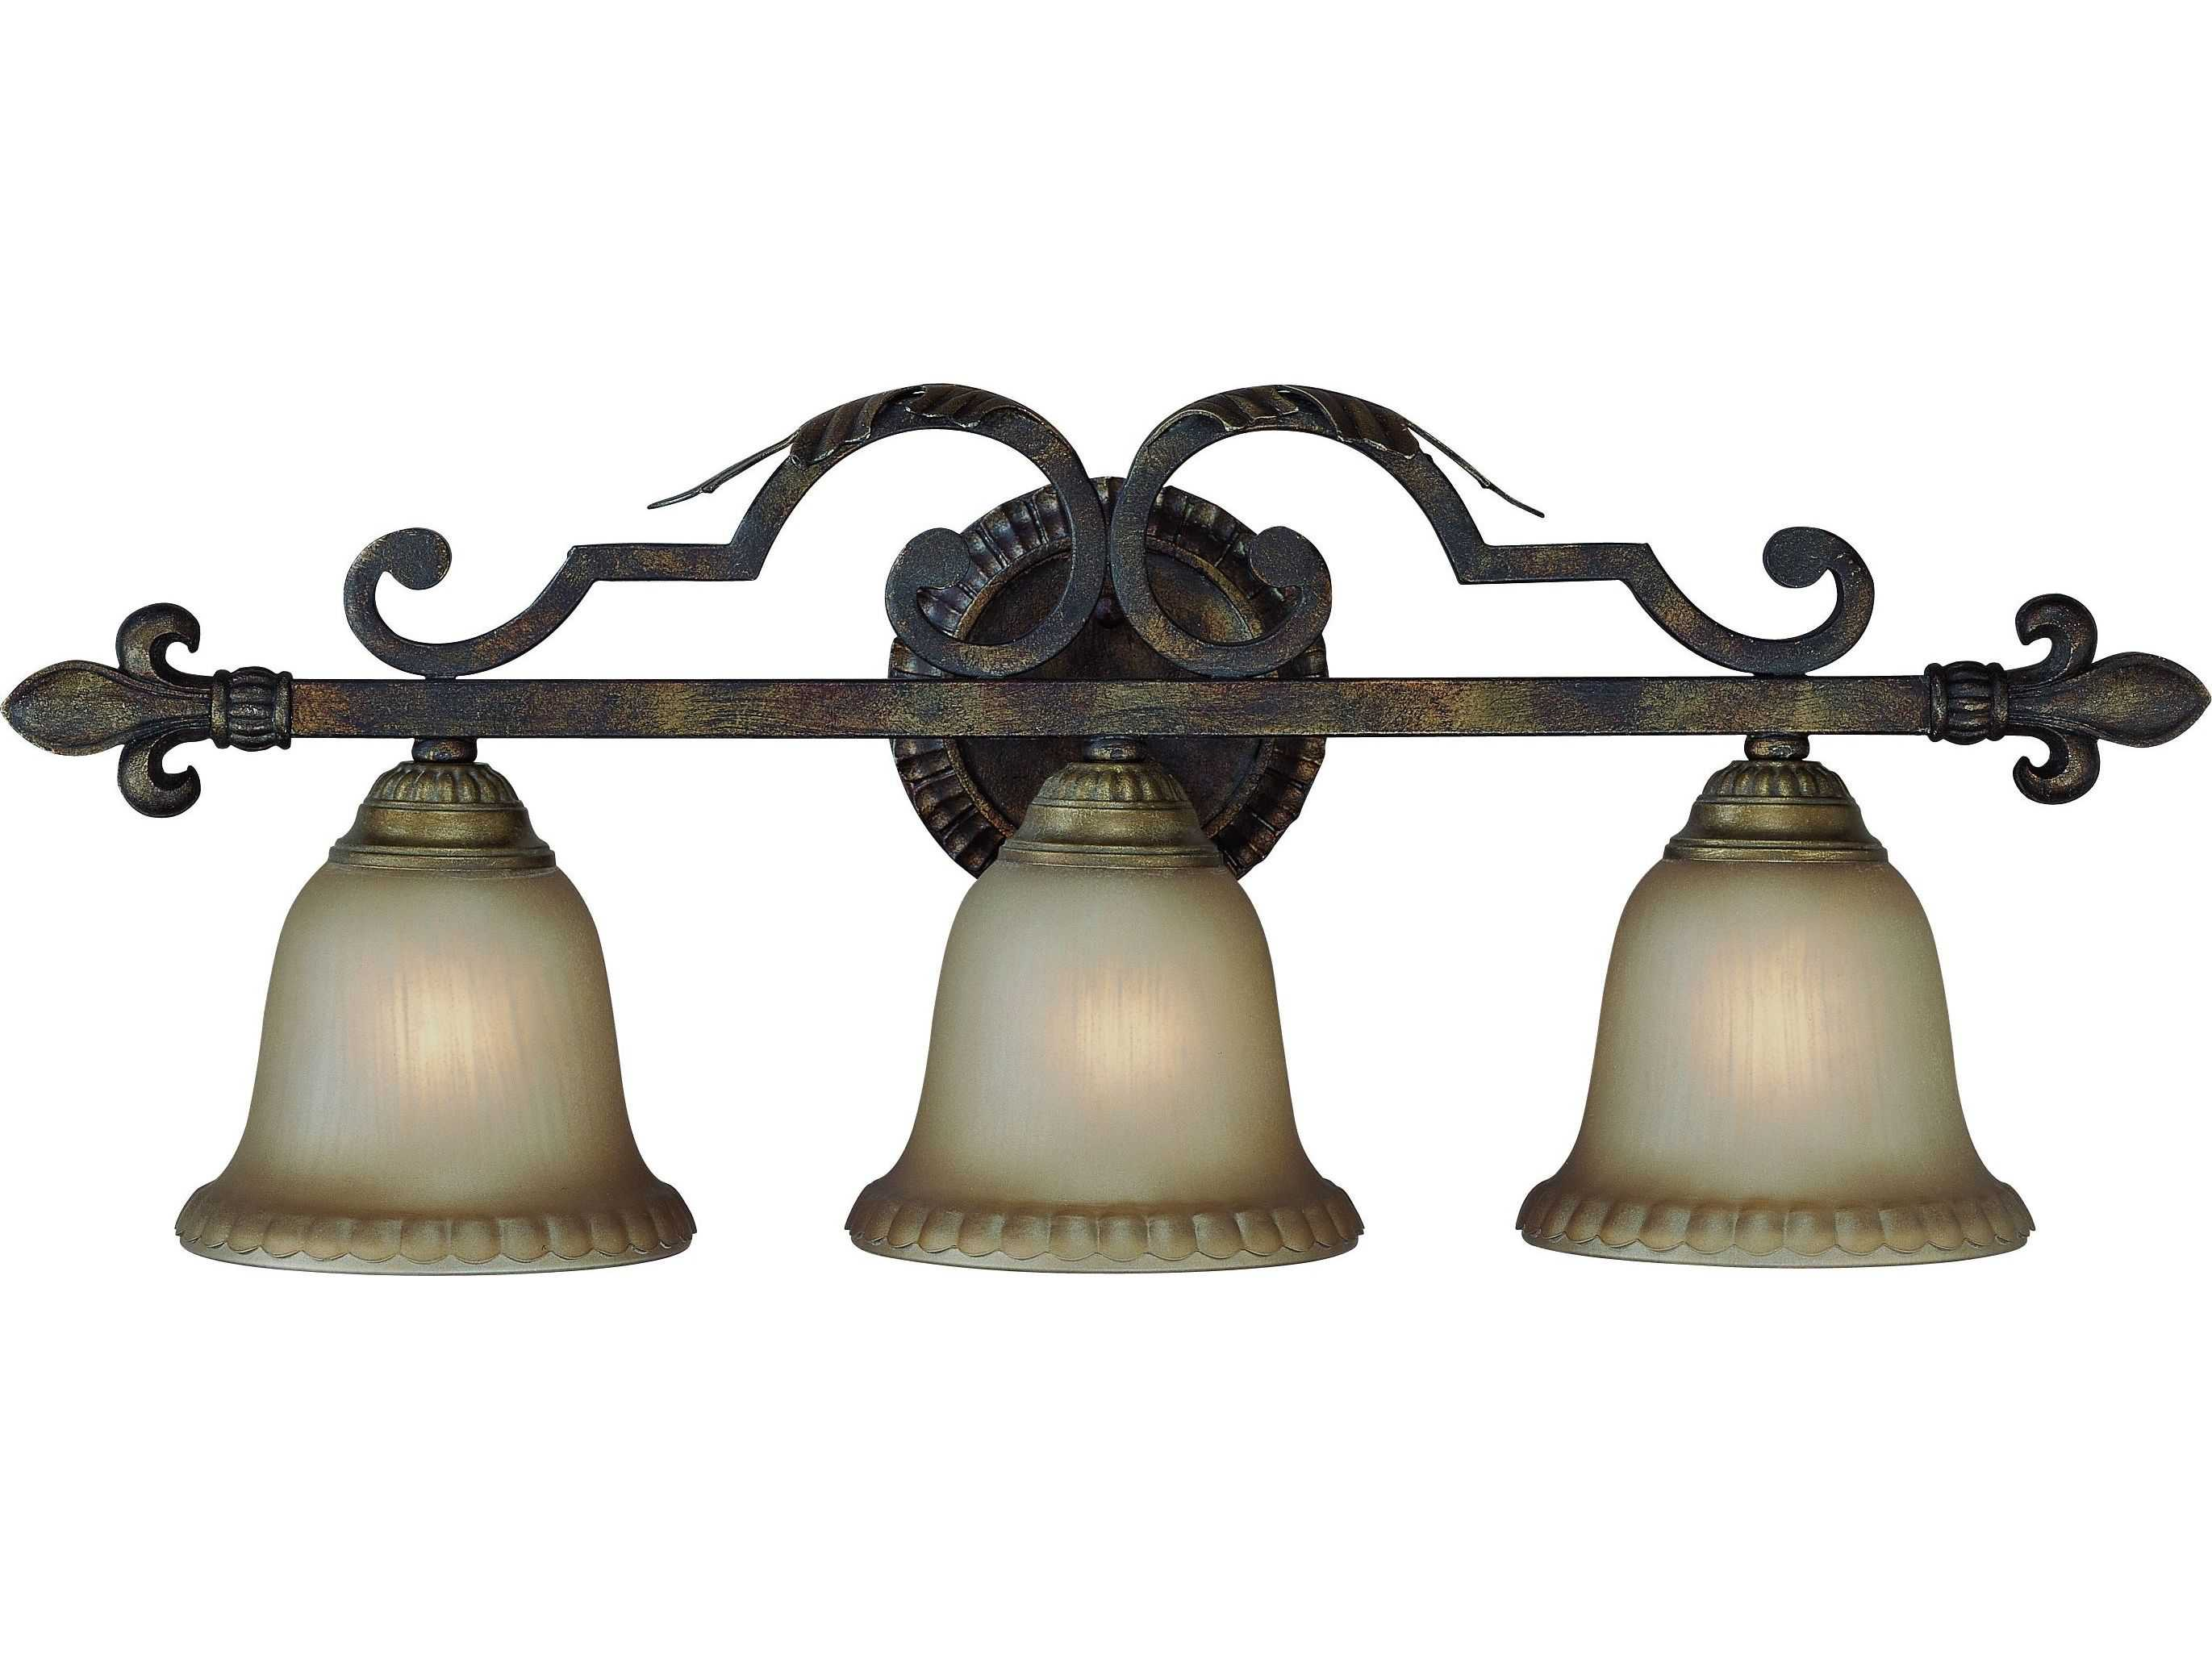 Vanity Lights Craftmade : Craftmade Jeremiah Devereaux Three-Light Vanity Light in Burleson Bronze with Distressed Mocha ...